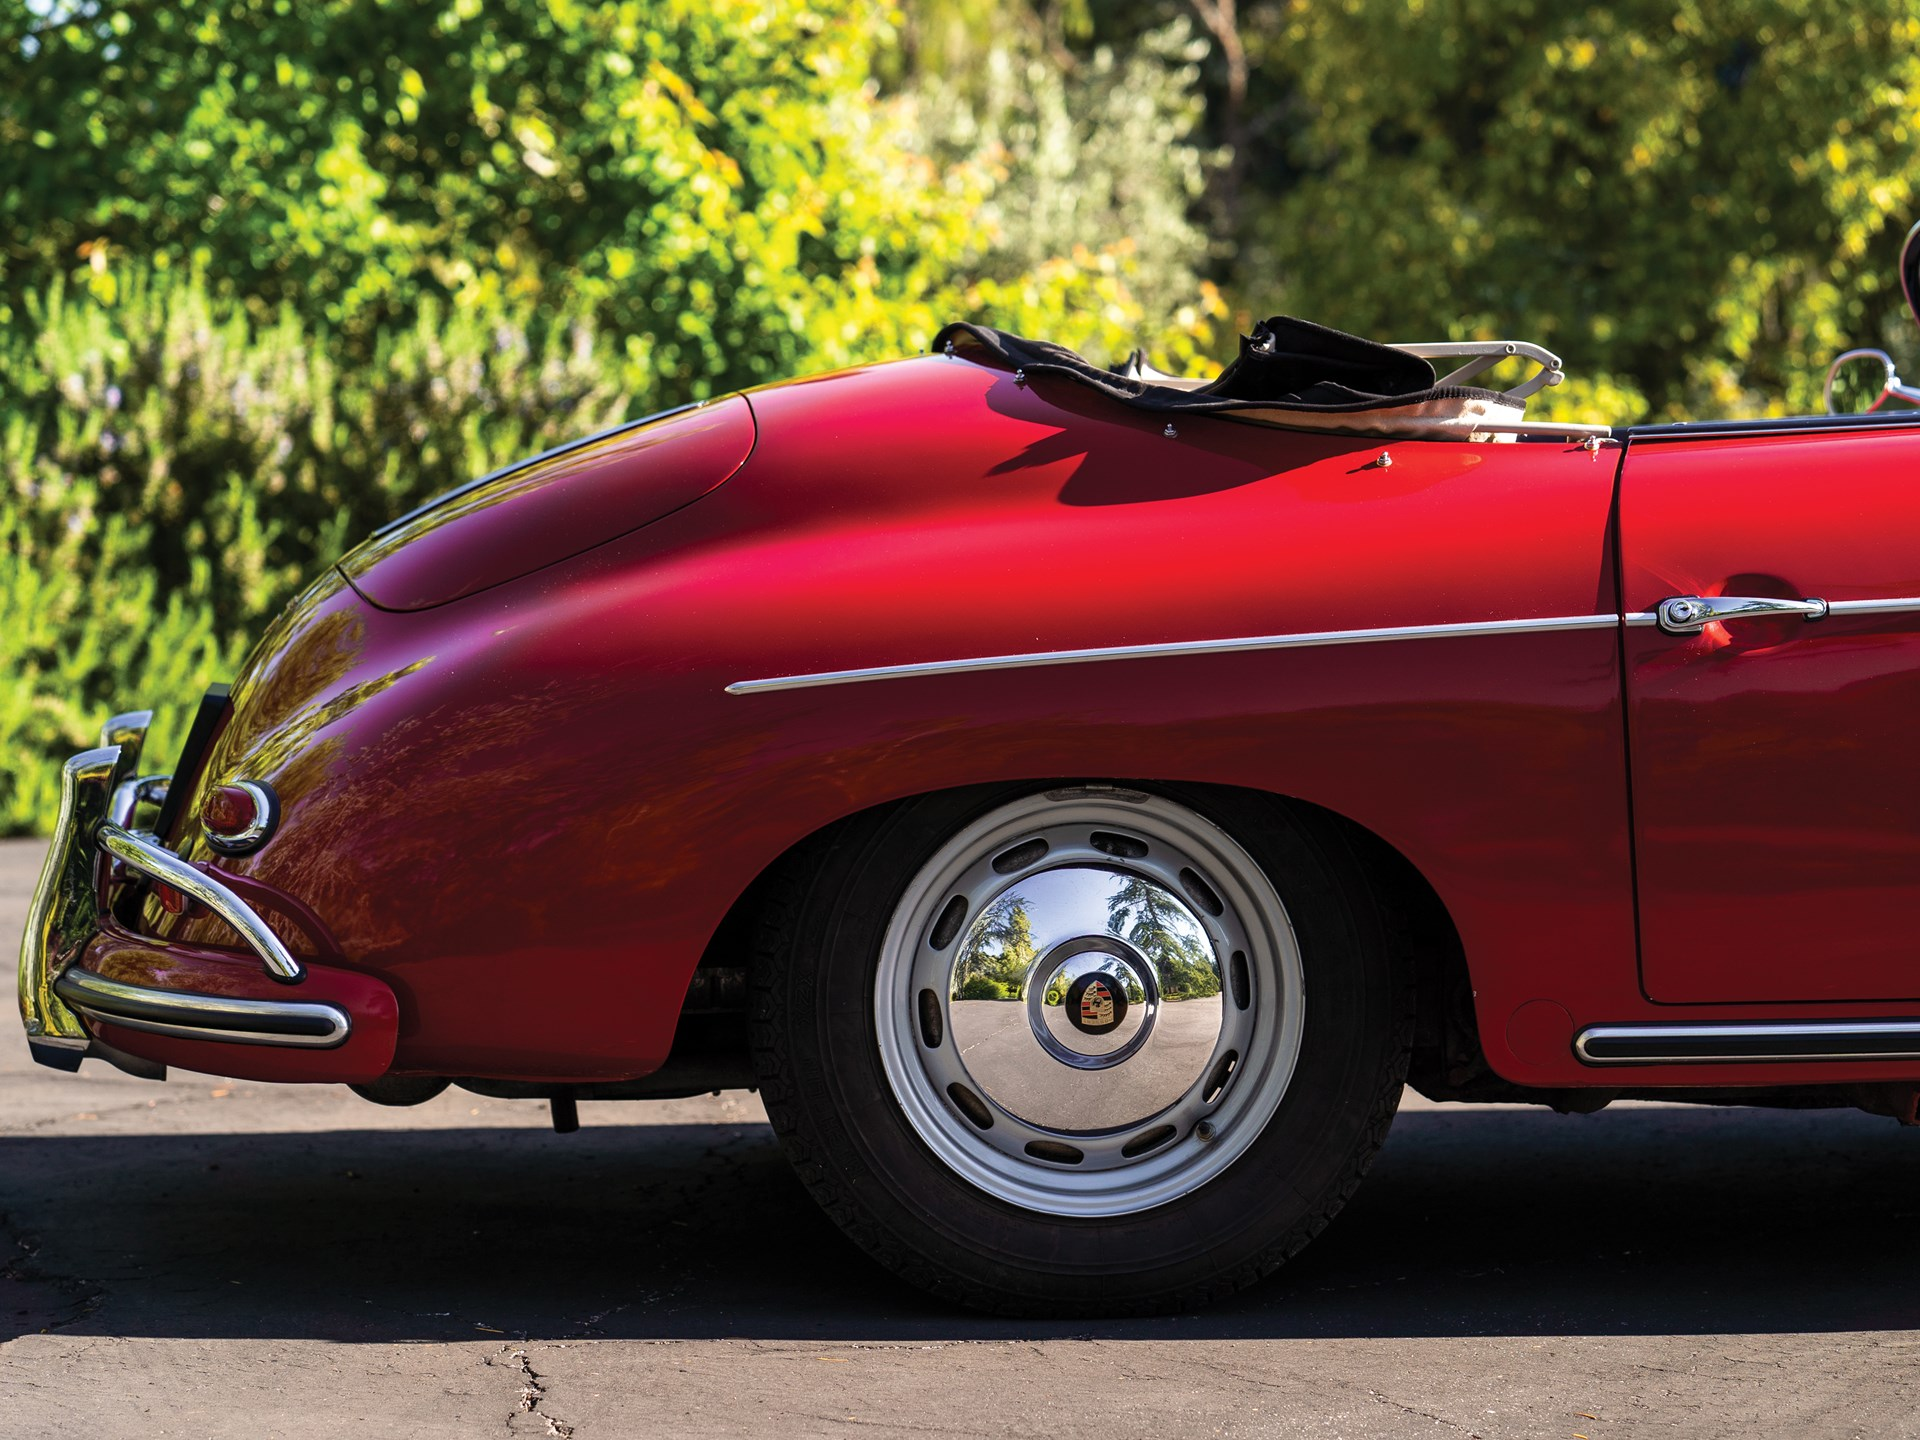 1958 Porsche 356 A 1600 'Super' Speedster by Reutter